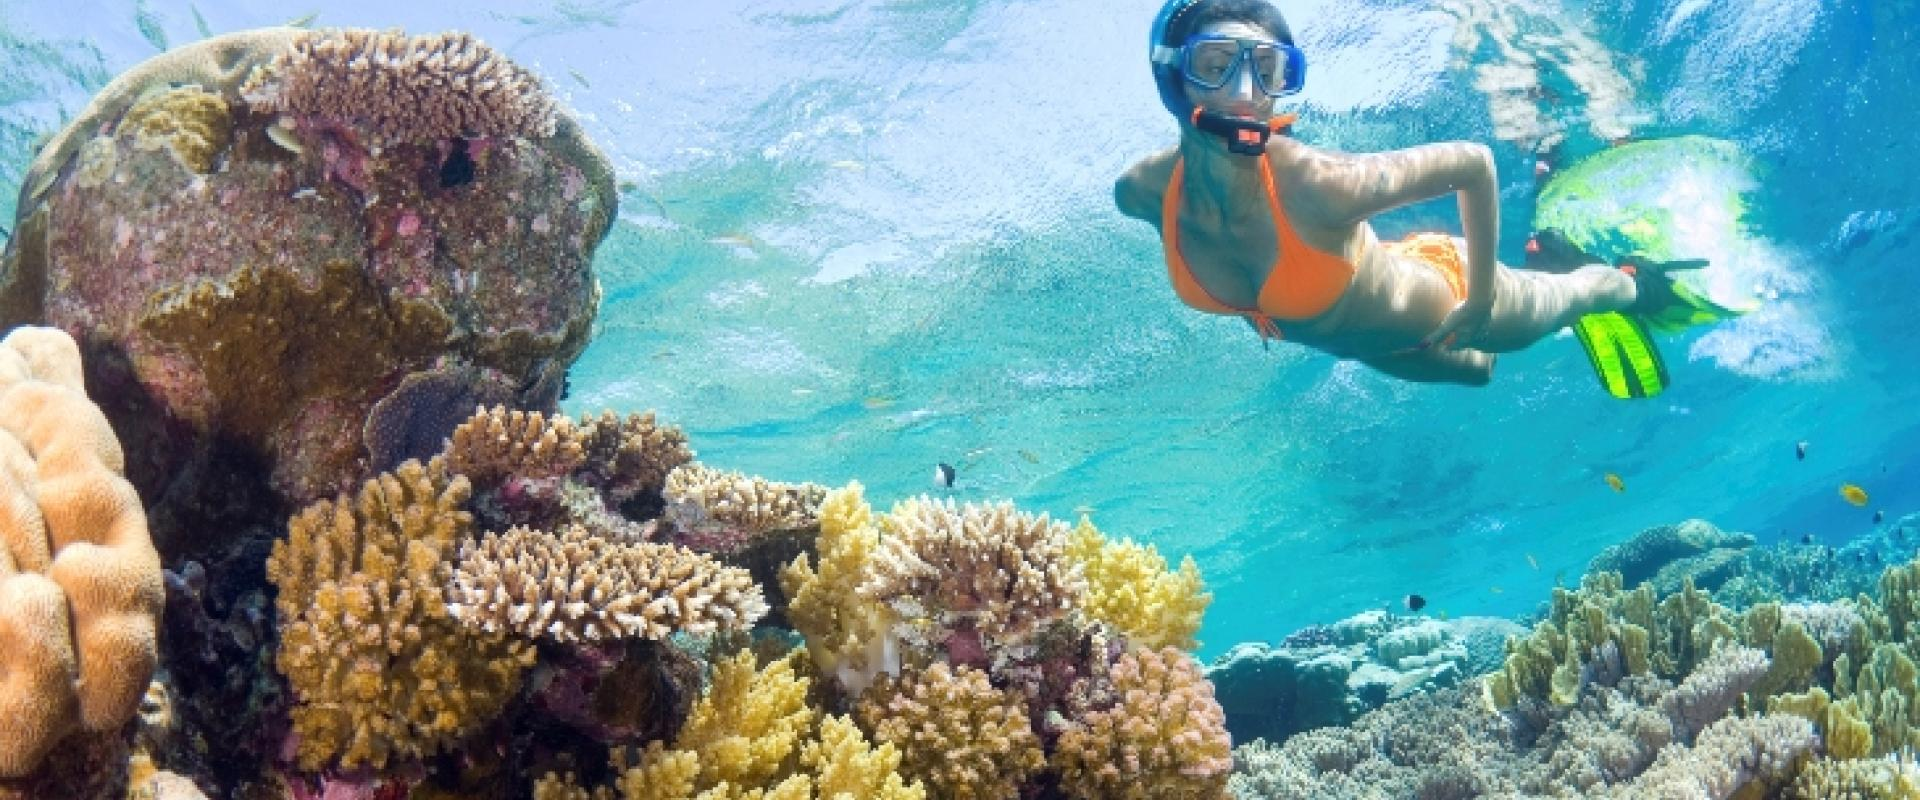 Snorkeling in the gulf of Poets